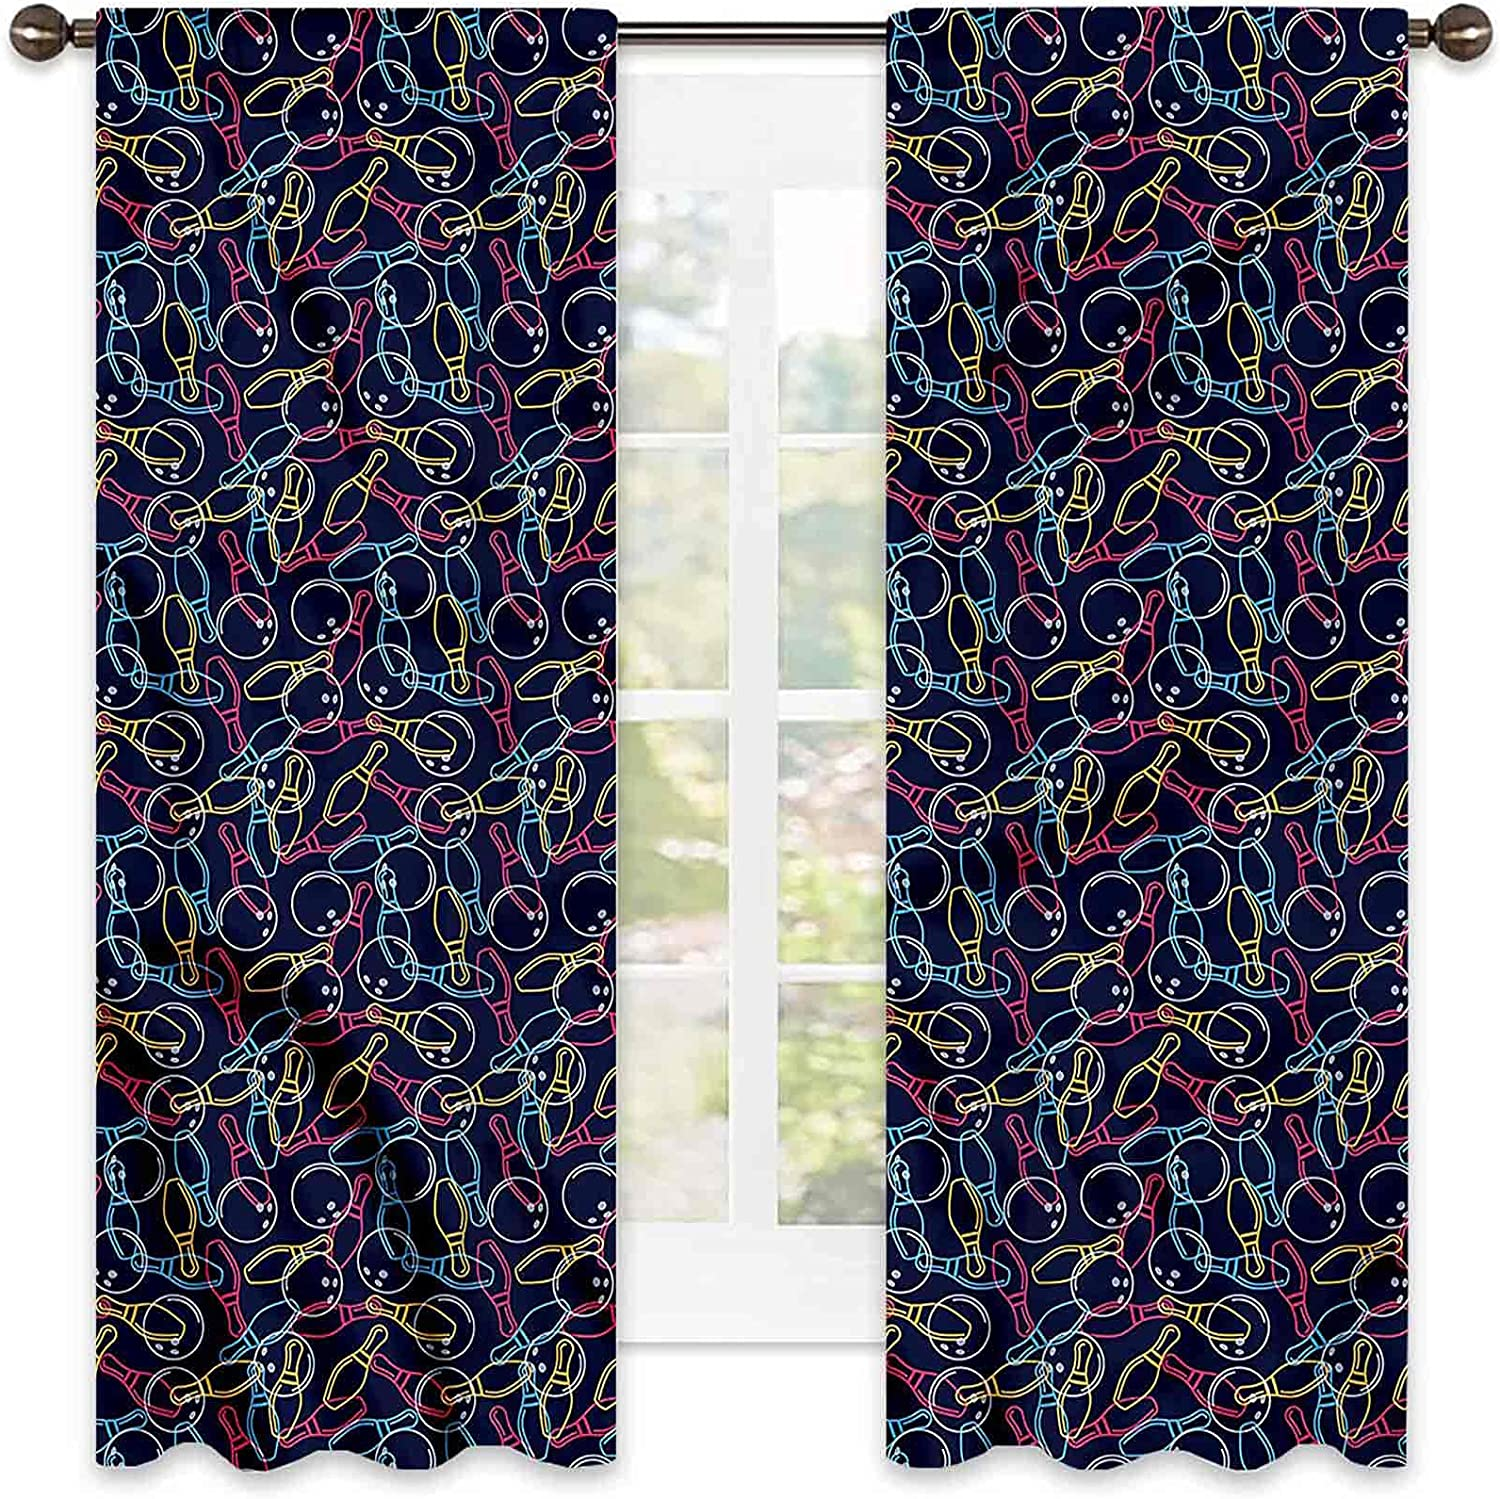 Bowling 90% Max 71% OFF Gorgeous Blackout Curtains Soundproof Shade Color Outlines